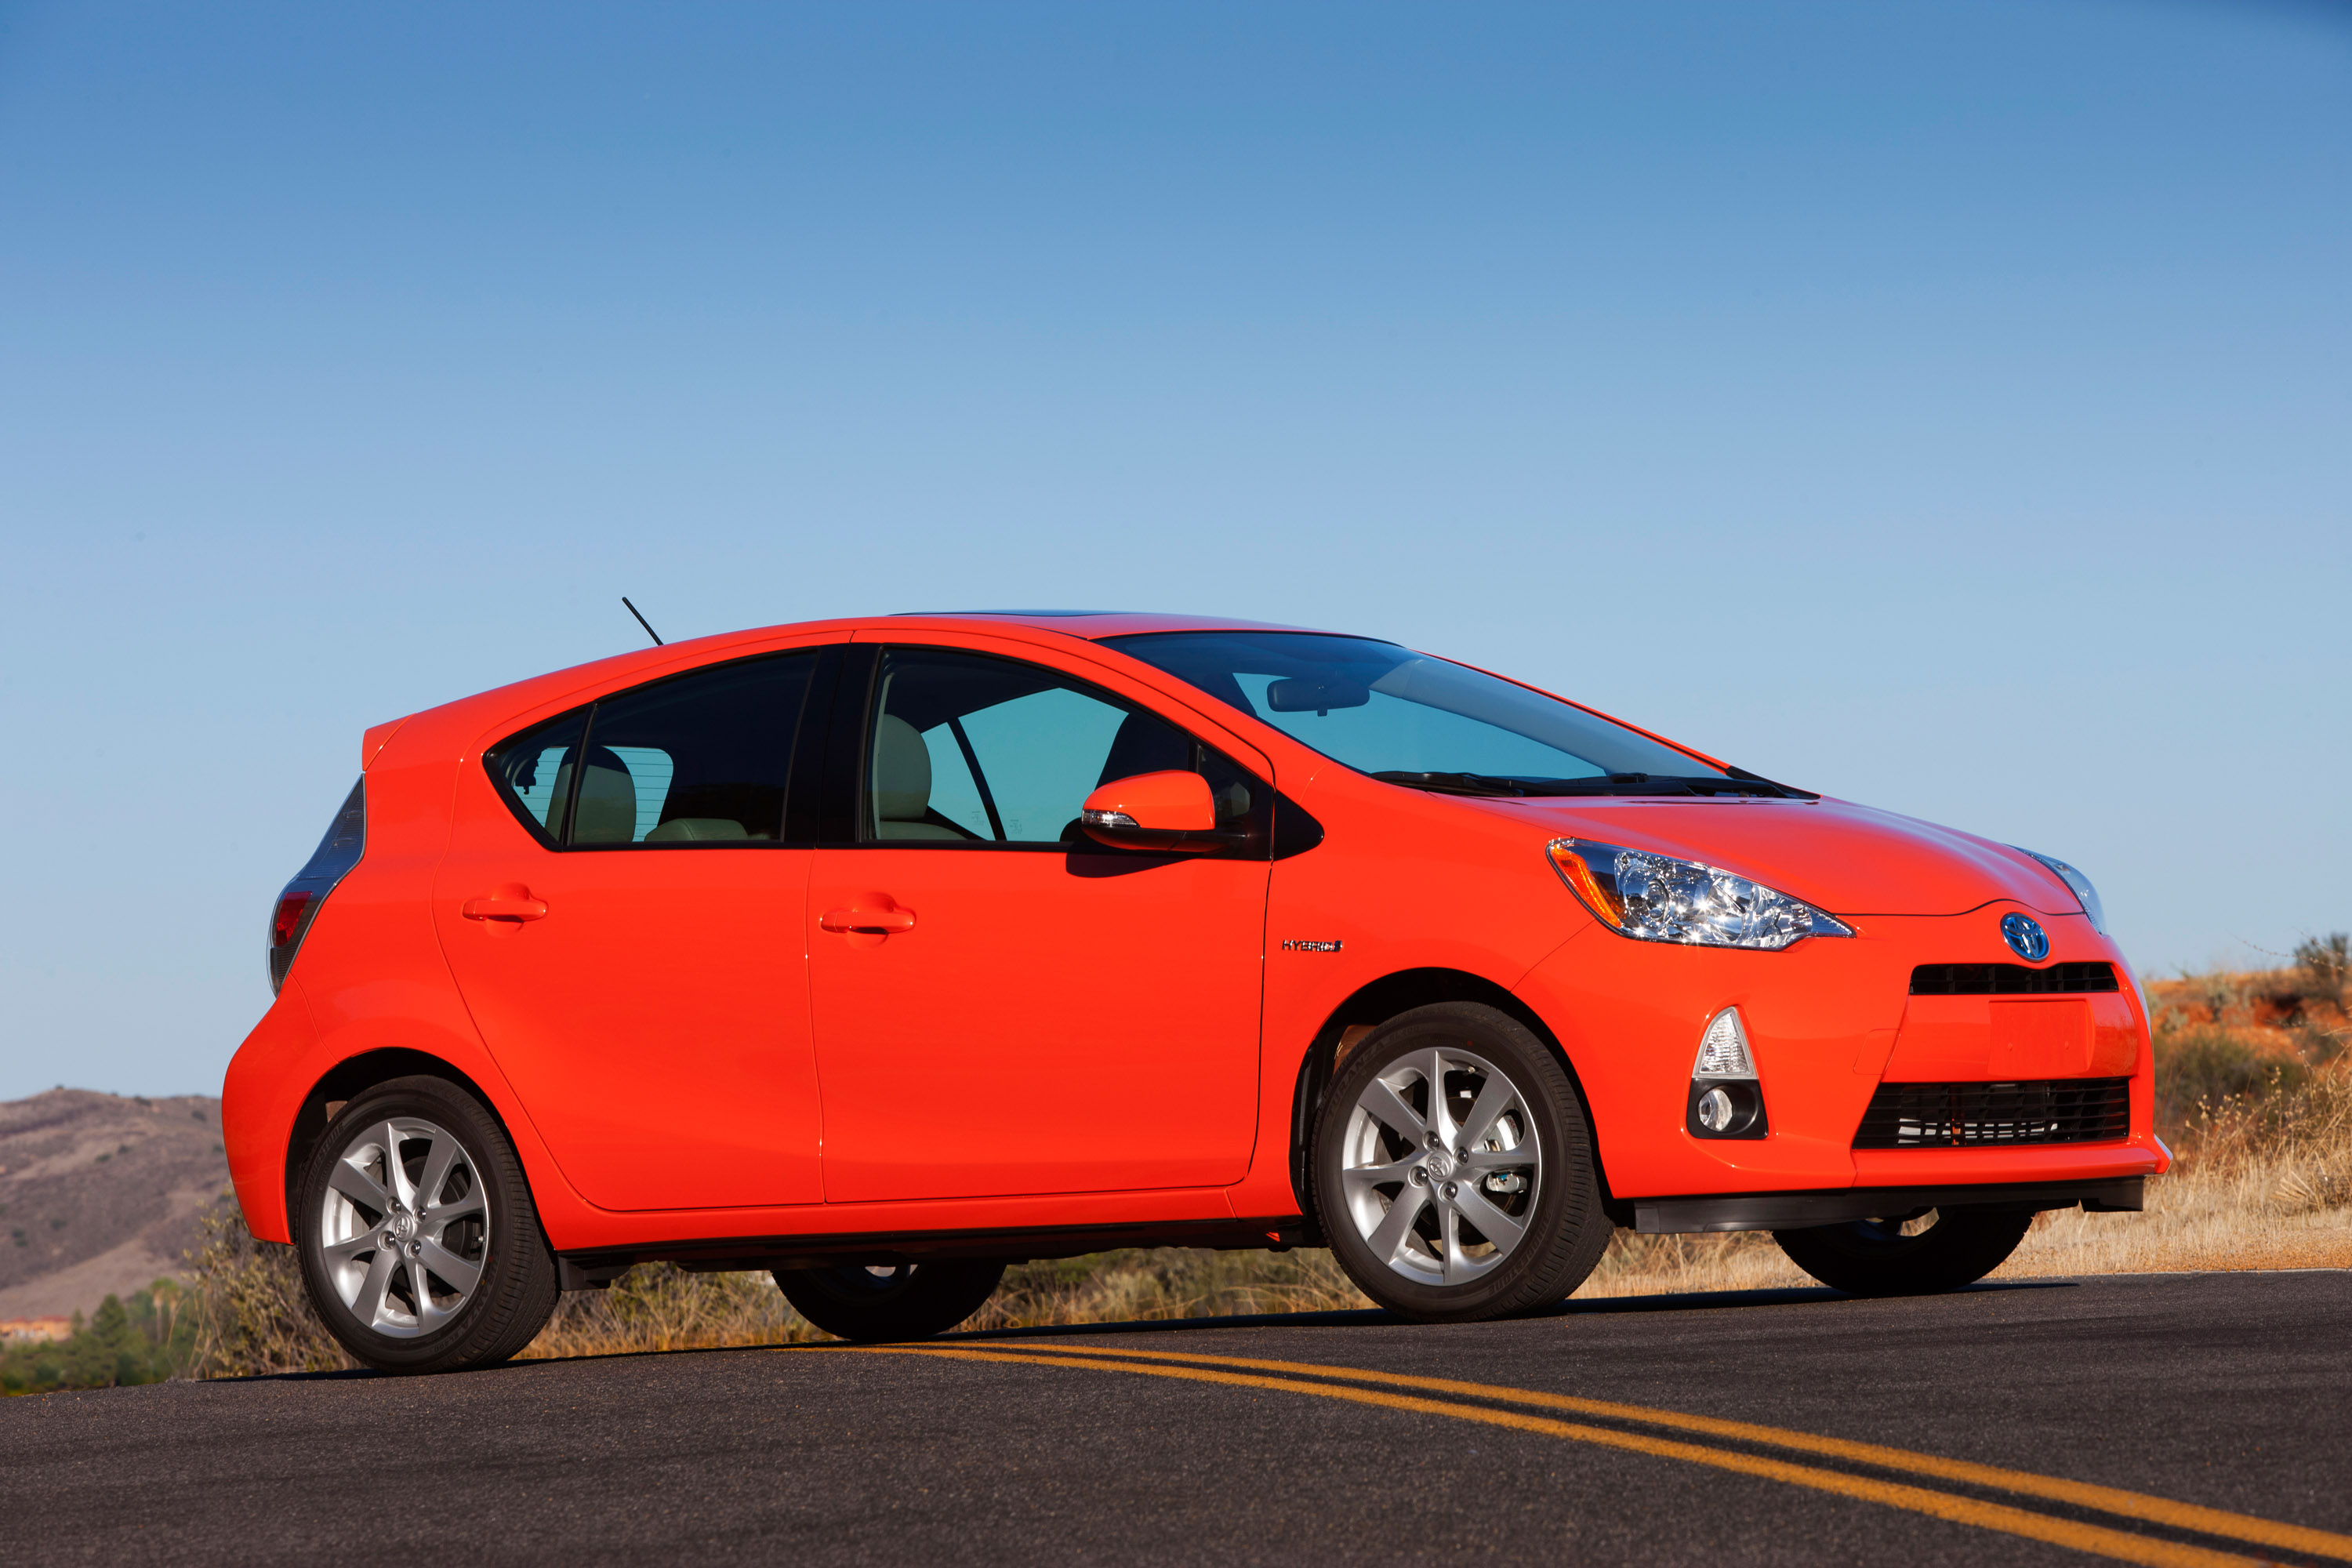 2013 Toyota Prius C Reviews& Test Drives - Green Car Reports